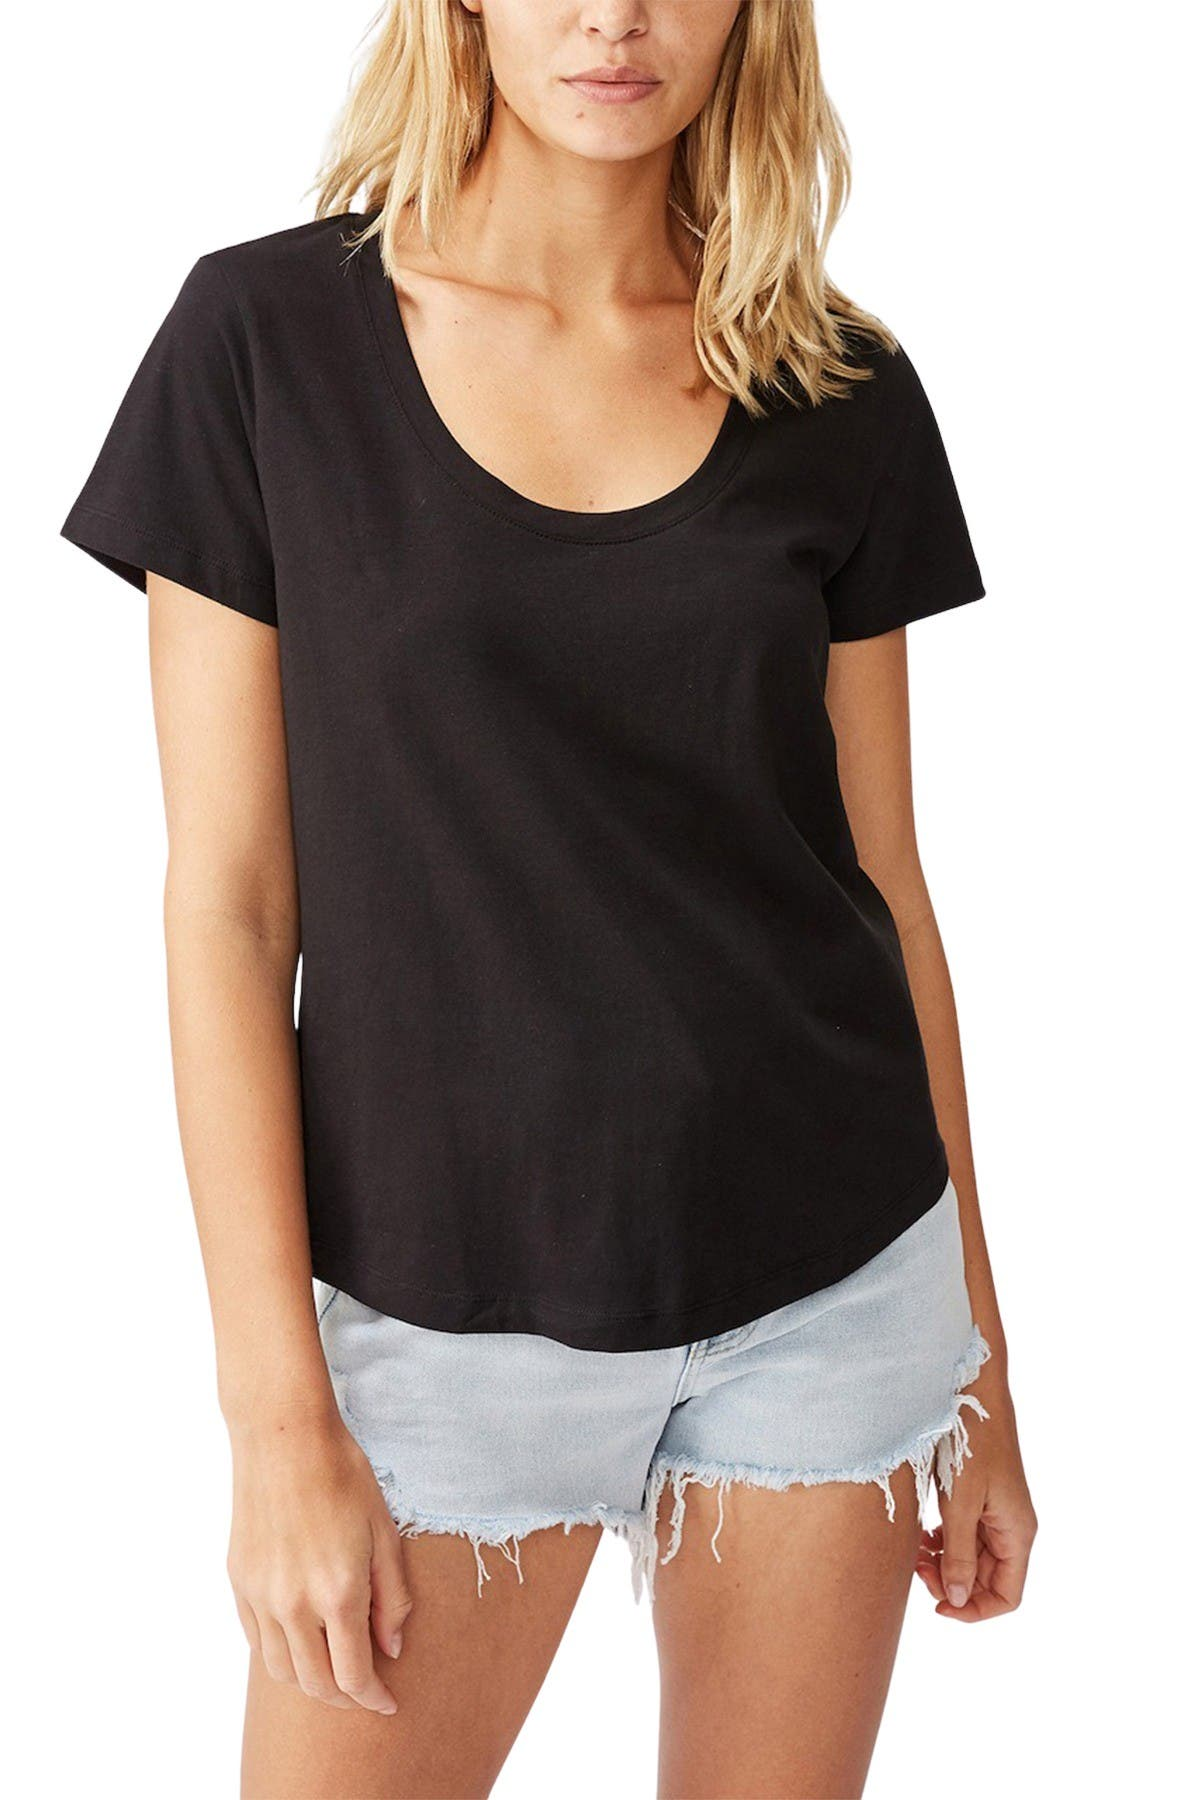 Image of Cotton On The One Scoop T-Shirt